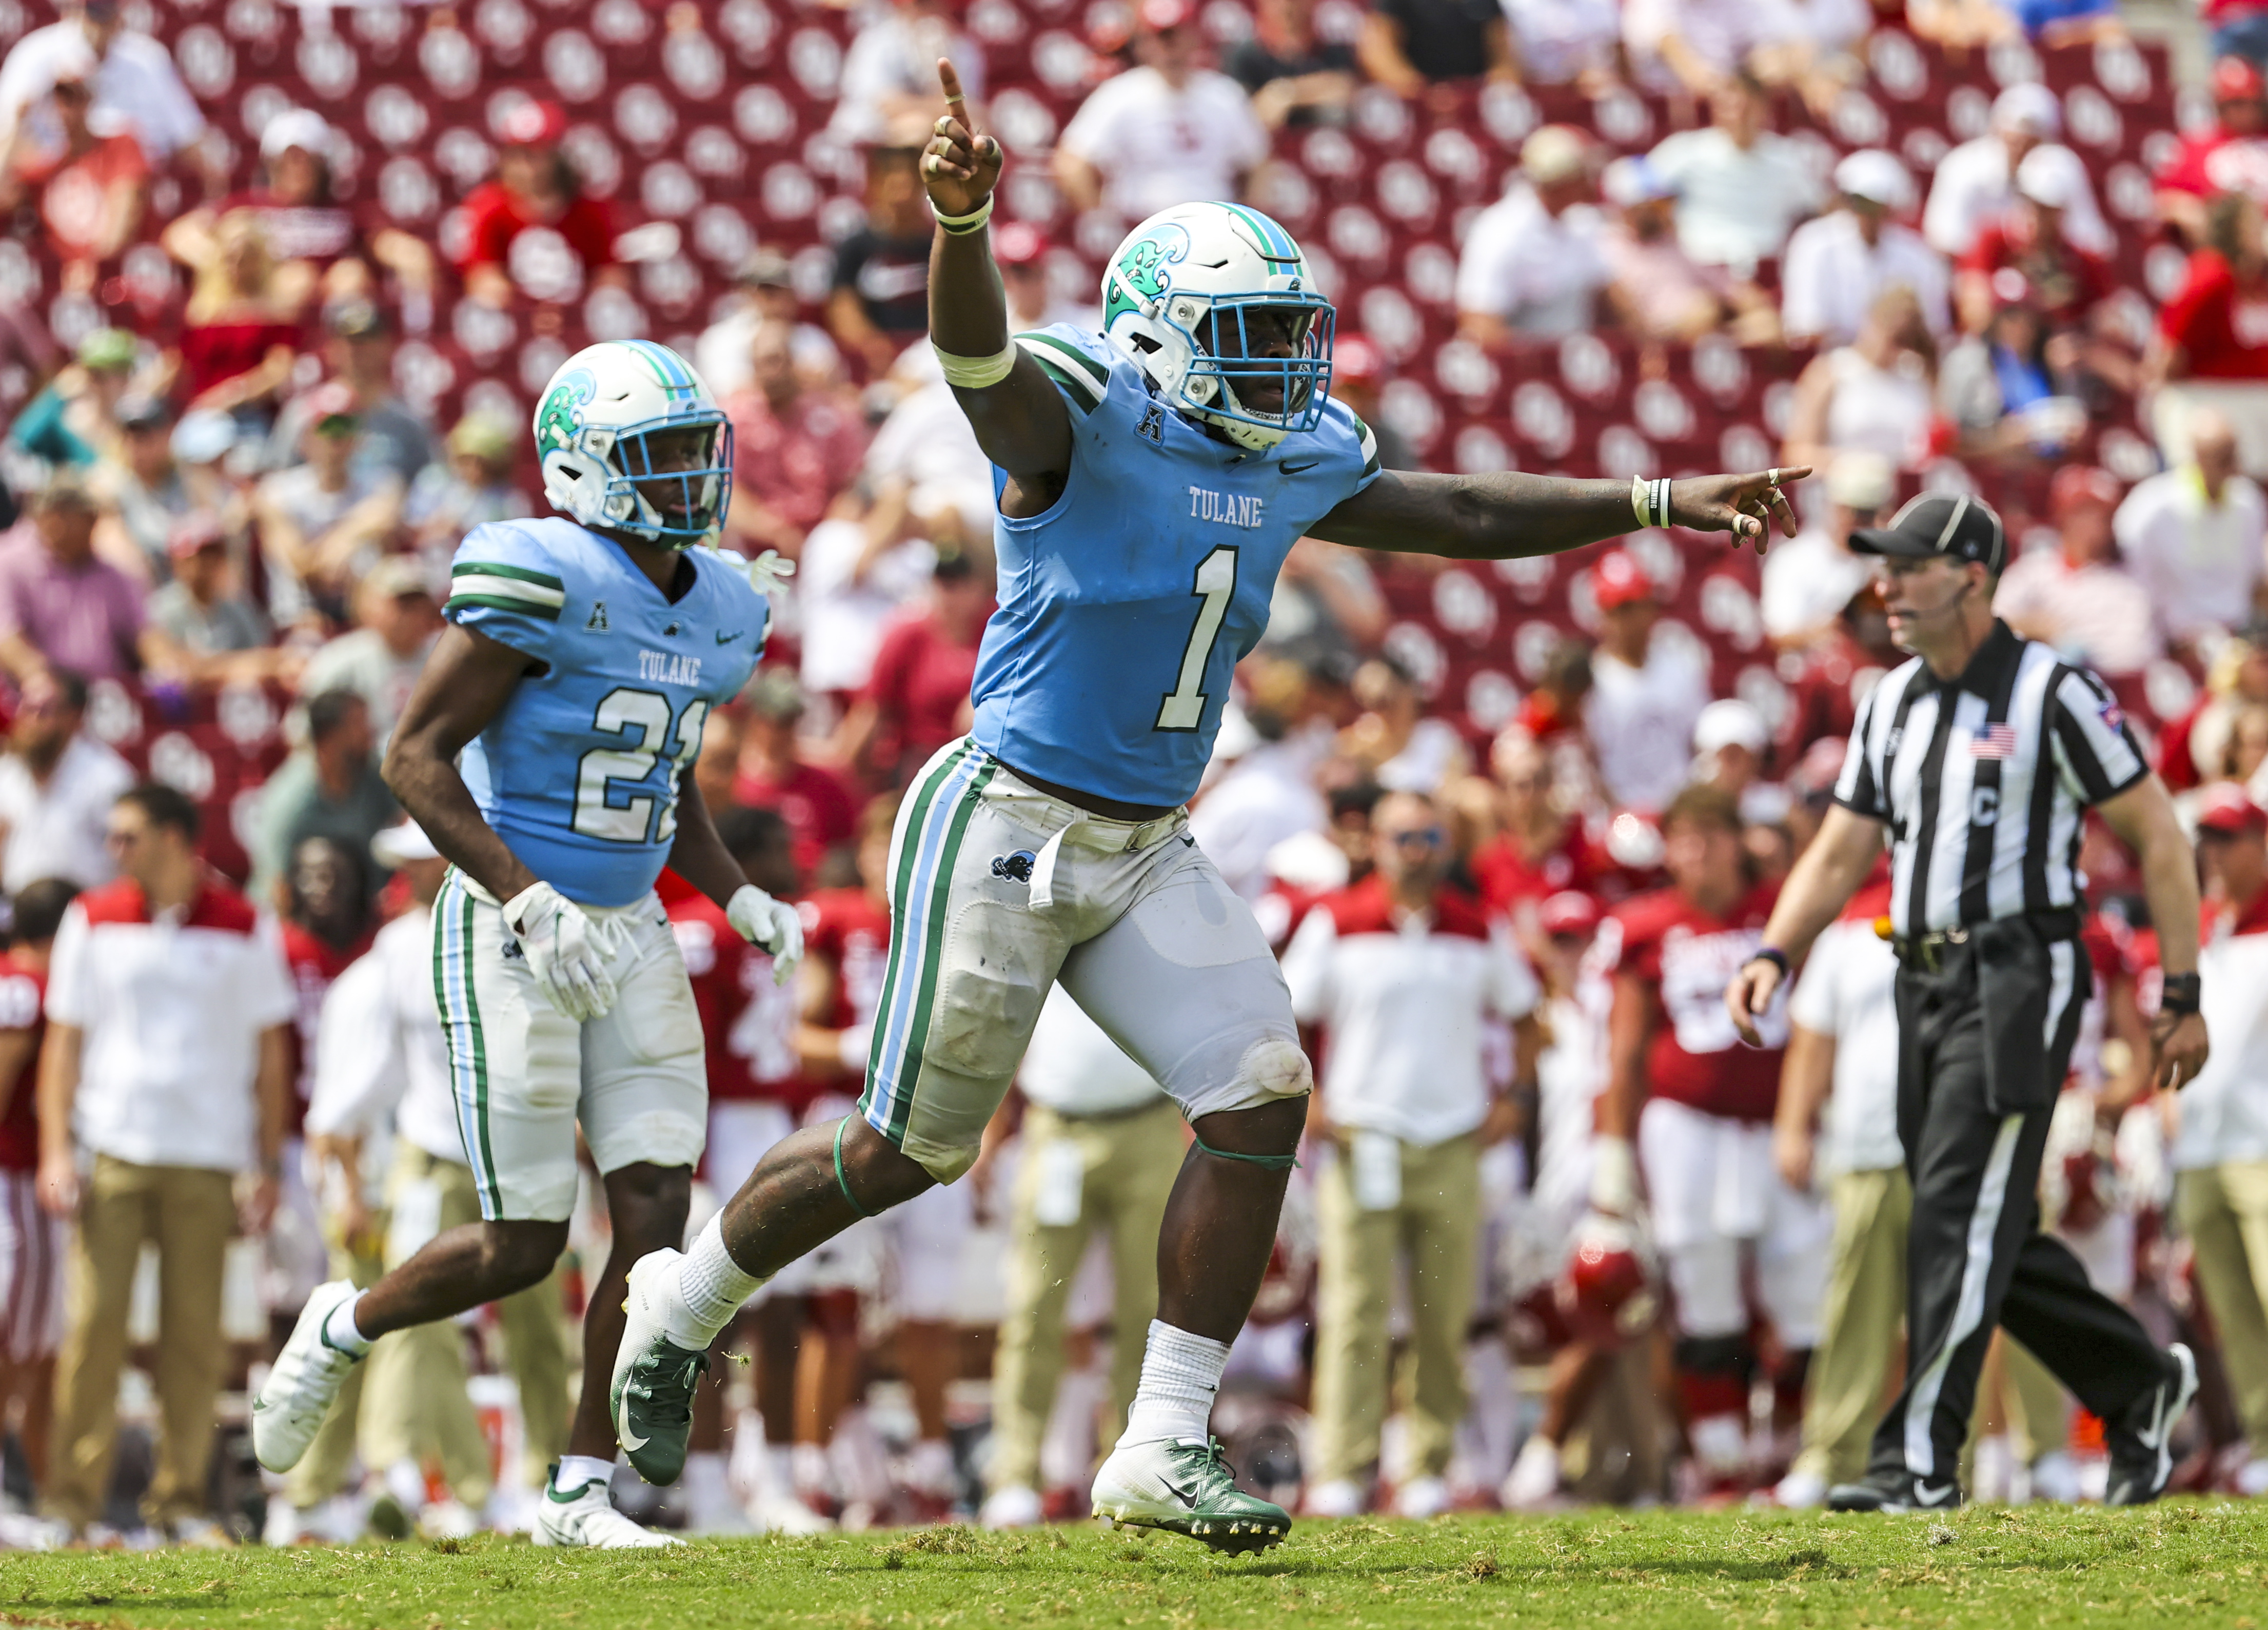 Tulane Green Wave linebacker Nick Anderson reacts during the fourth quarter against the Oklahoma Sooners at Gaylord Family-Oklahoma Memorial Stadium.